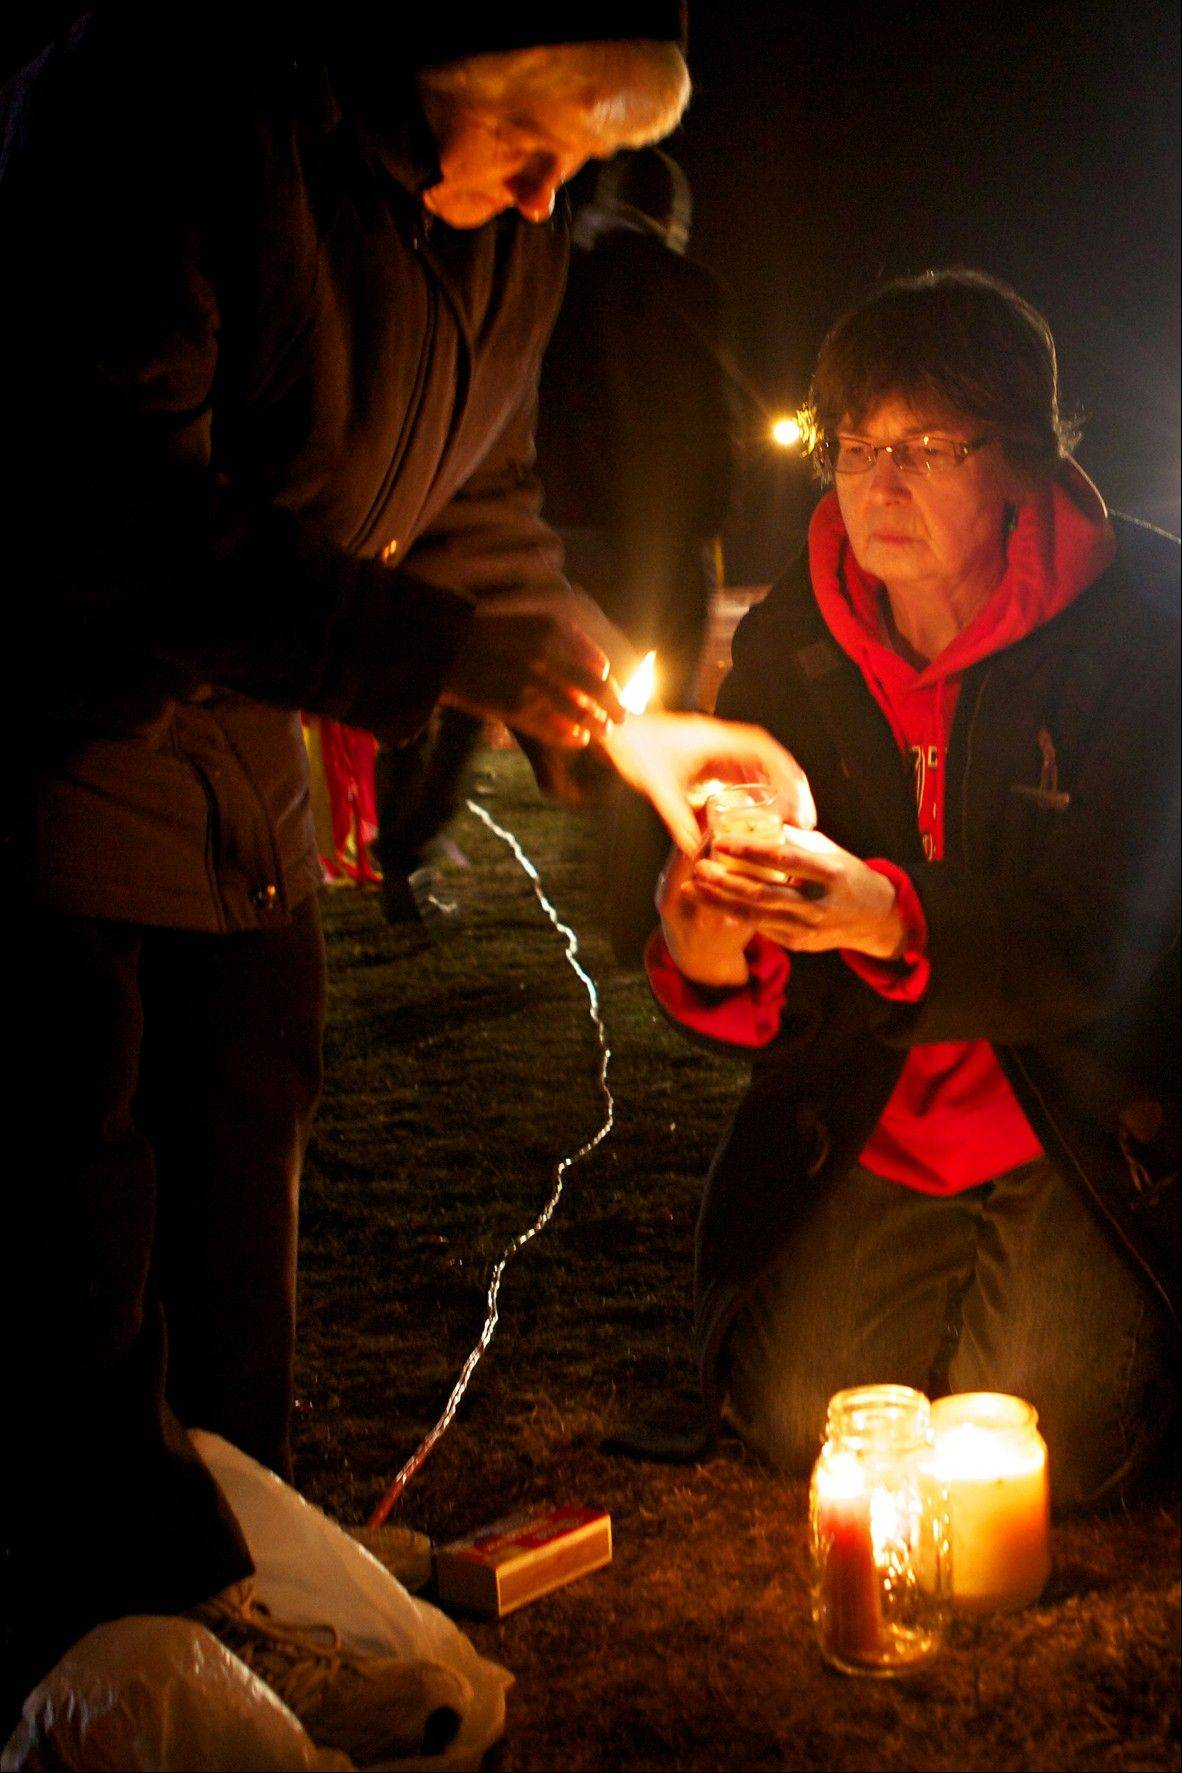 Leona Wieland, 65, of Sioux Falls, lights candles in peaceful protest with Sister Janice Klein, left, as they await the Tuesday execution in Sioux Falls, S.D., of South Dakota State Penitentiary inmate Donald Moeller.